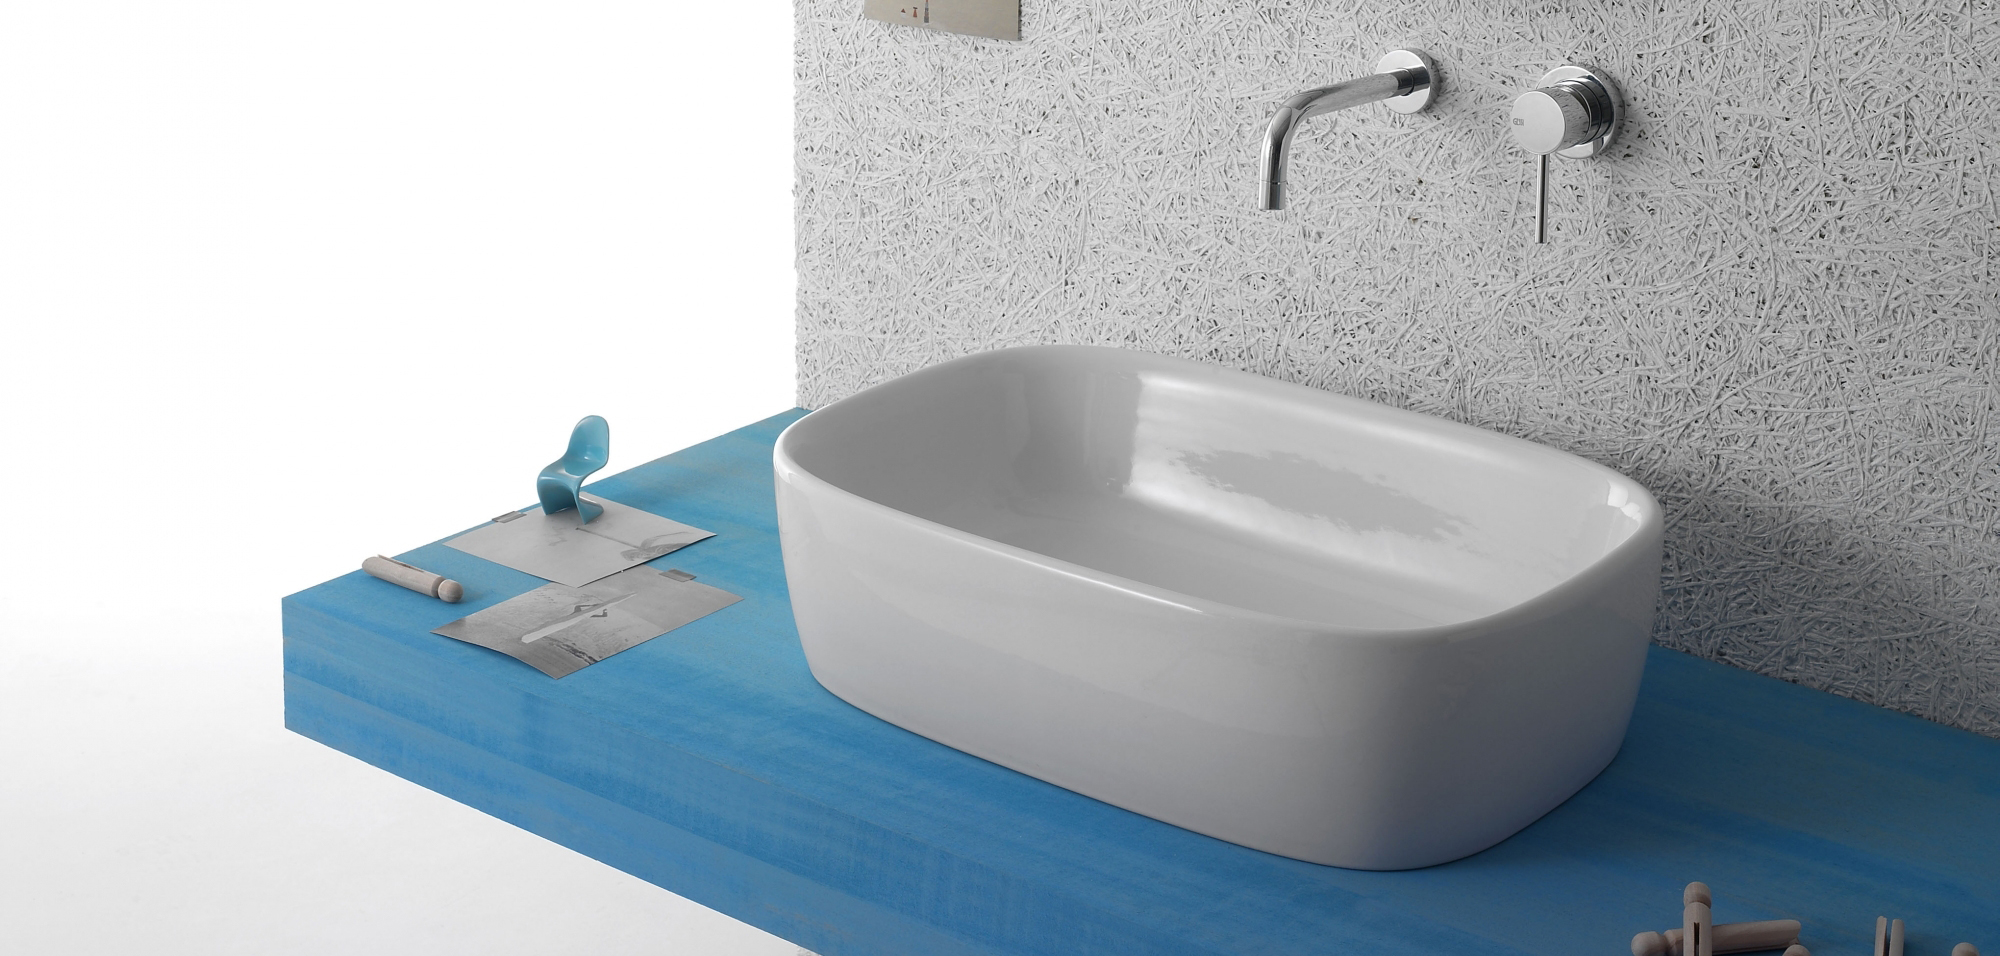 Genesis Washbasins From Ceramica Globo The Kitchen And